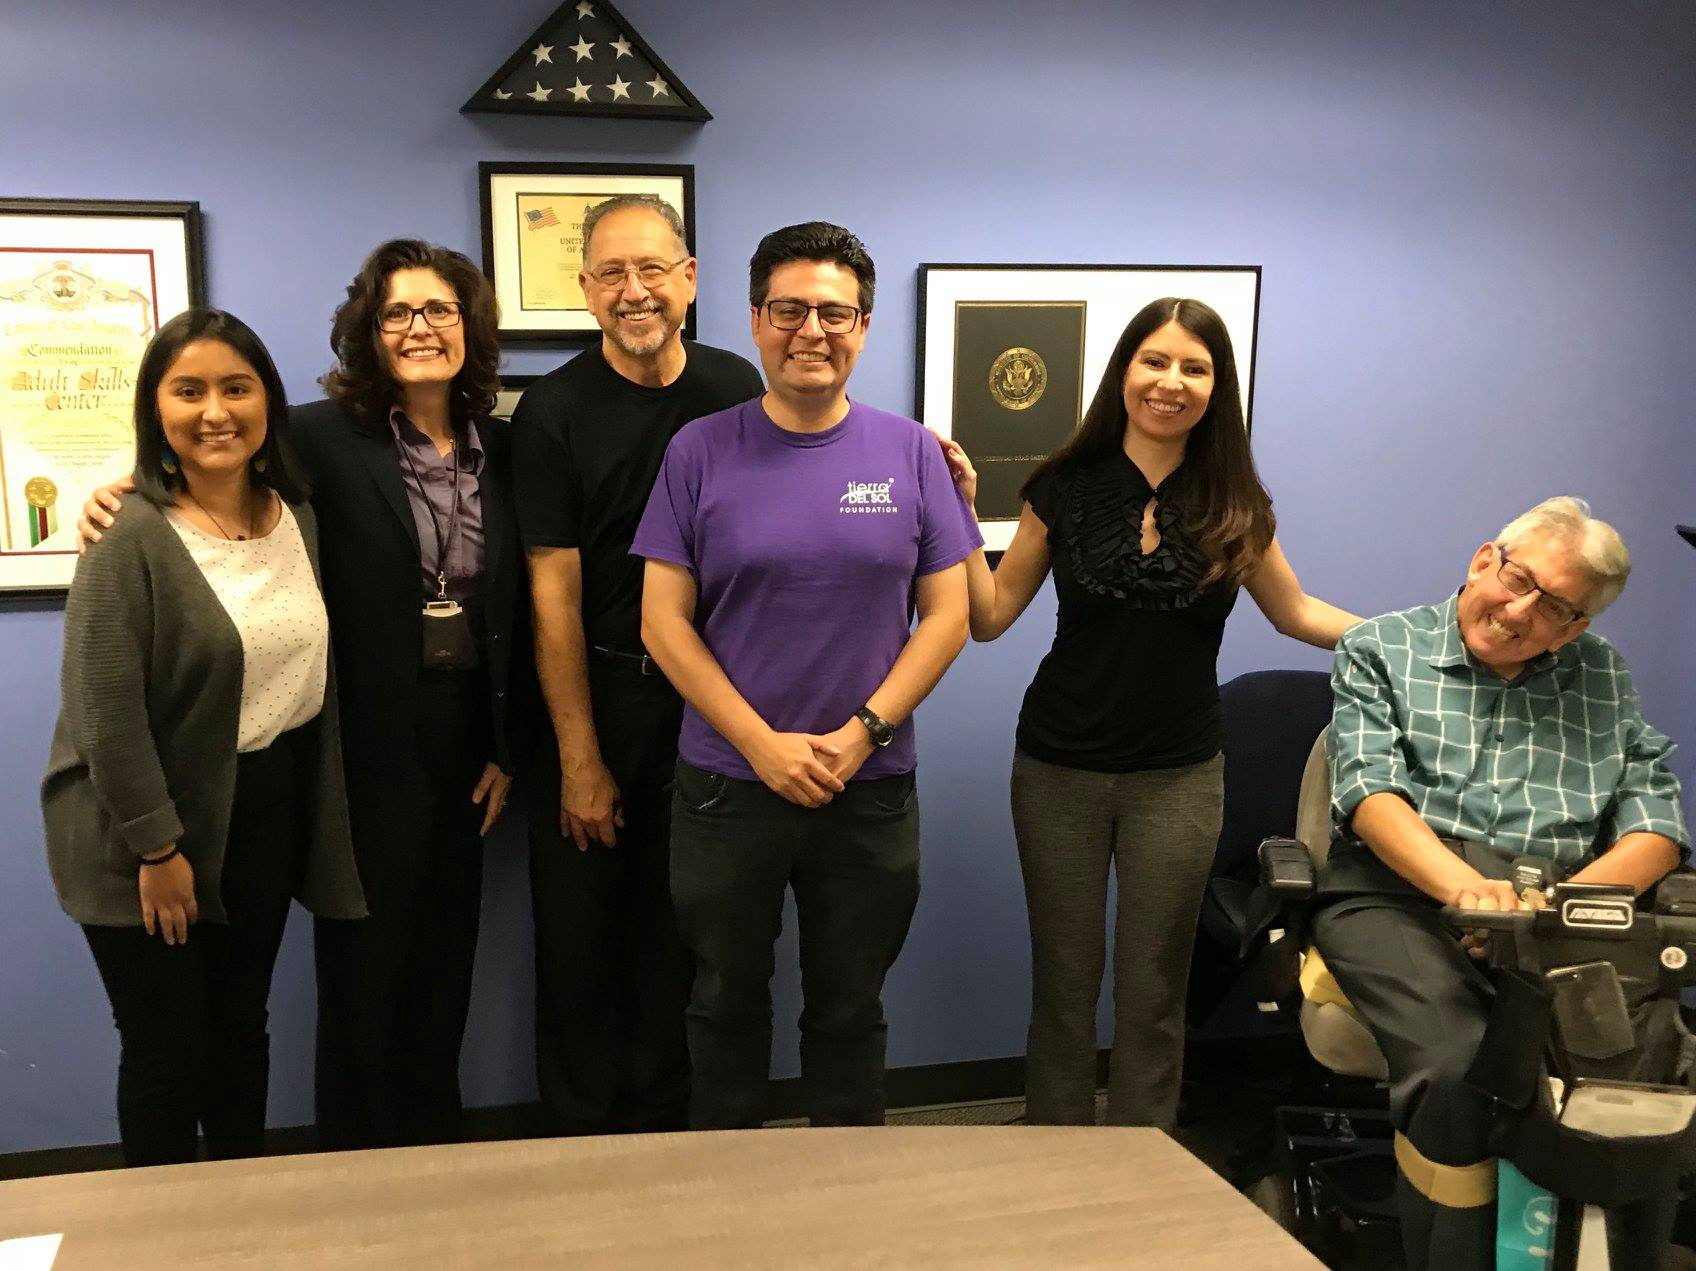 A Tour of TASC for Assemblymember Jesse Gabriel's rep, Mayra Valadez along with North LA County Regional Center Executive Director, Ruth Jenka, TASC Board President, Nick Leone, Rep from Tierra Del Sol, (me!) and TASC Executive Director, Ken Lane